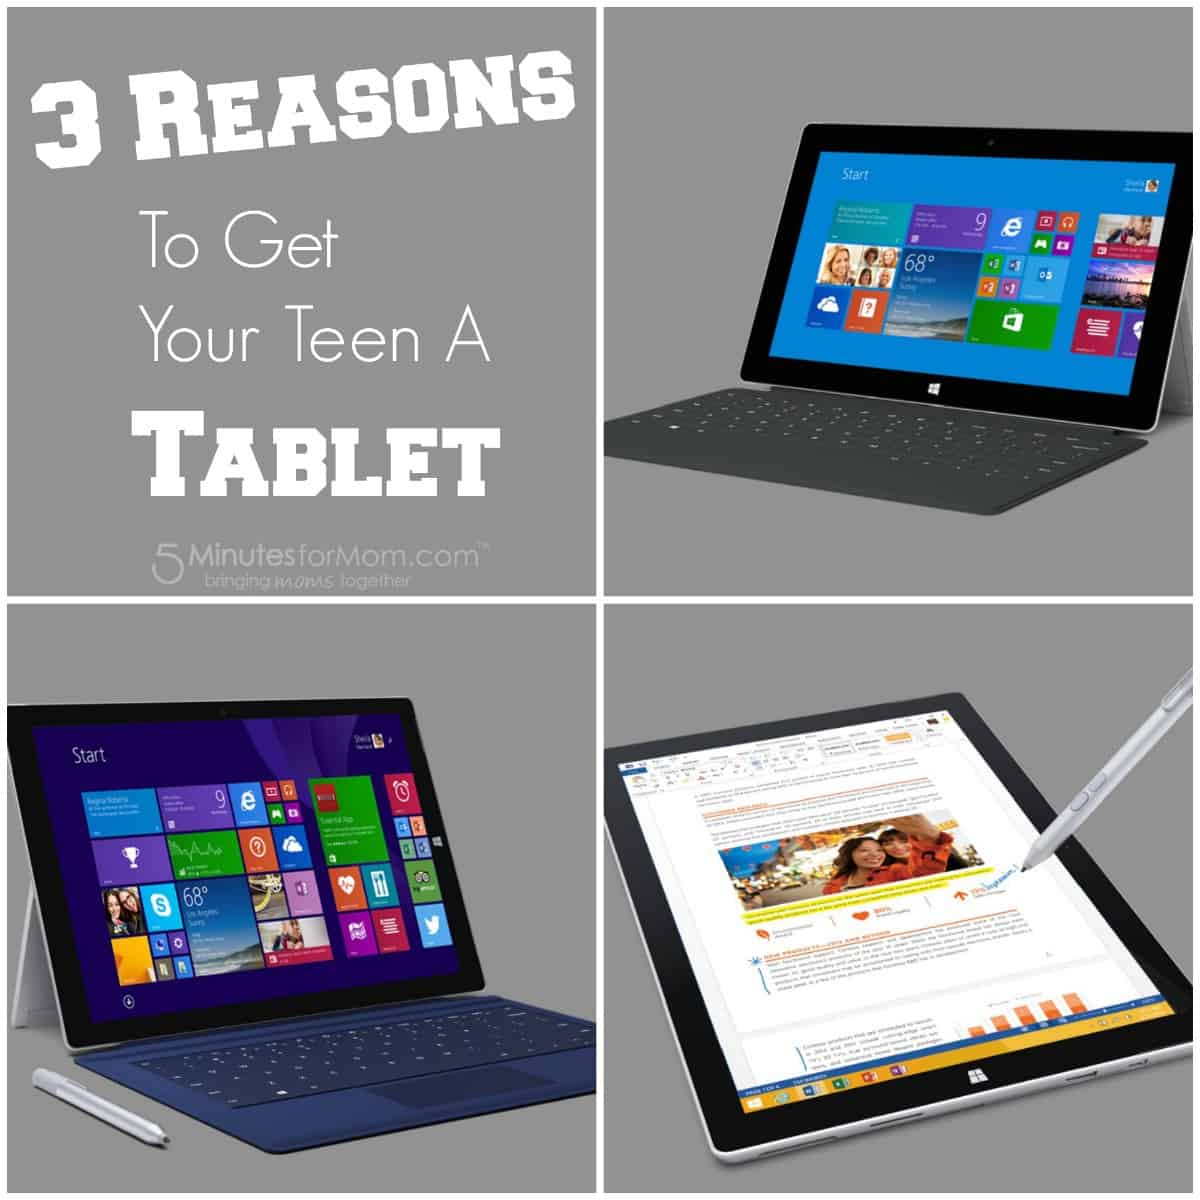 3 Reasons to Get Your Teen a Tablet